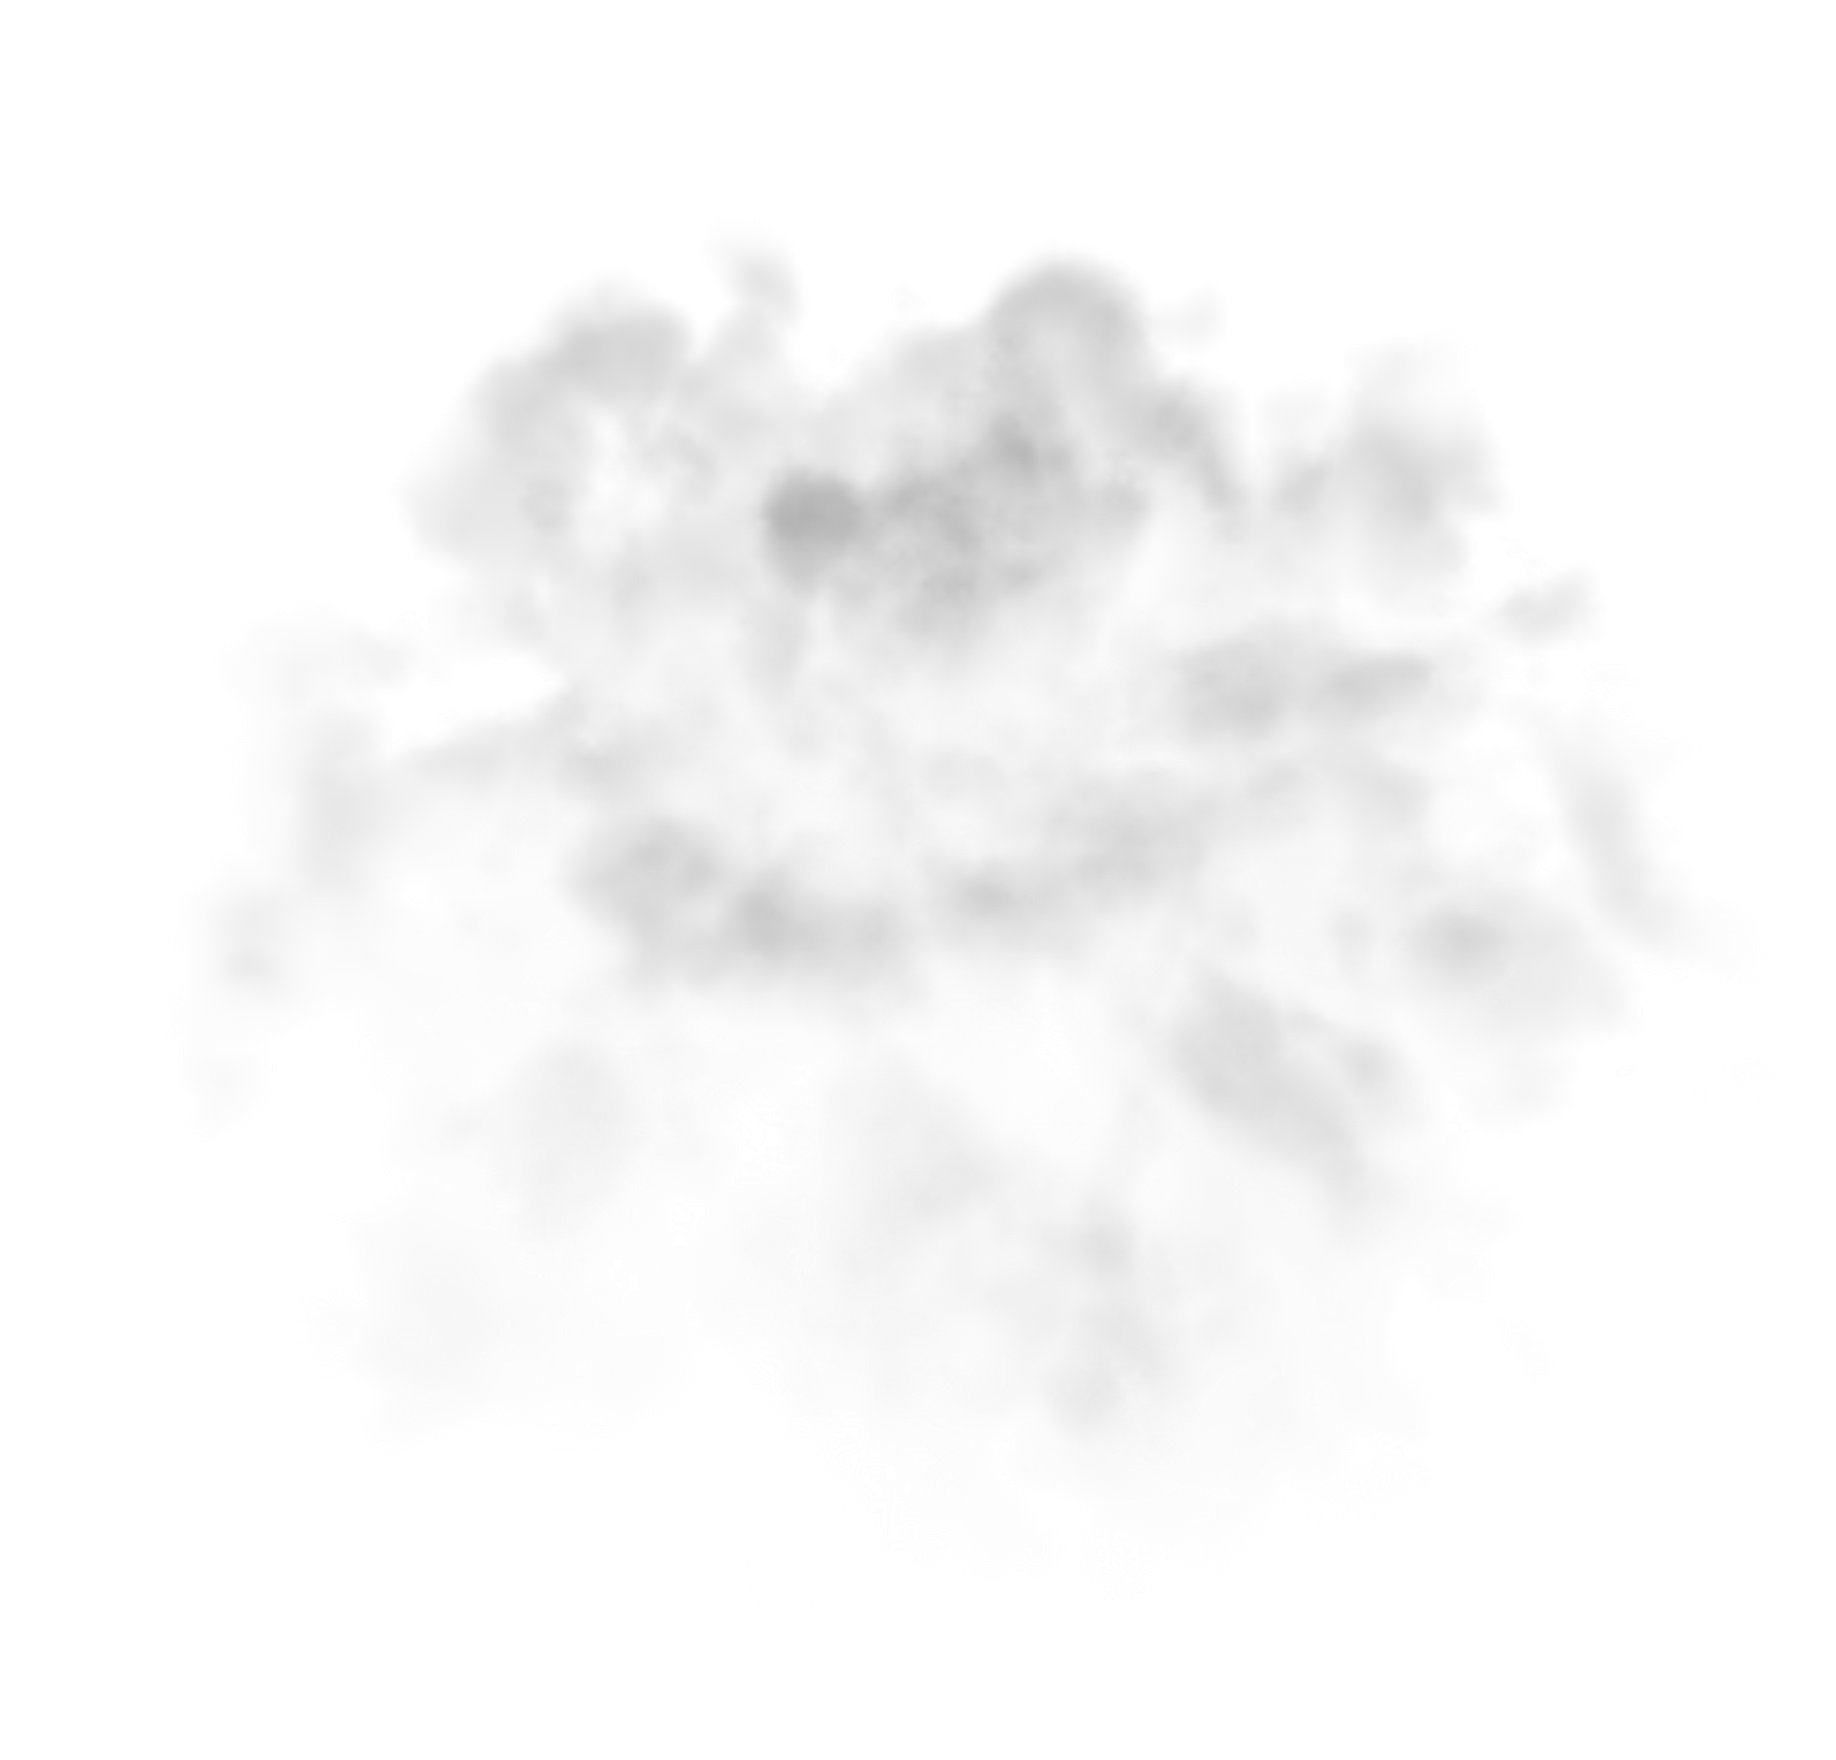 Realistic smoke png. Hd transparent images pluspng